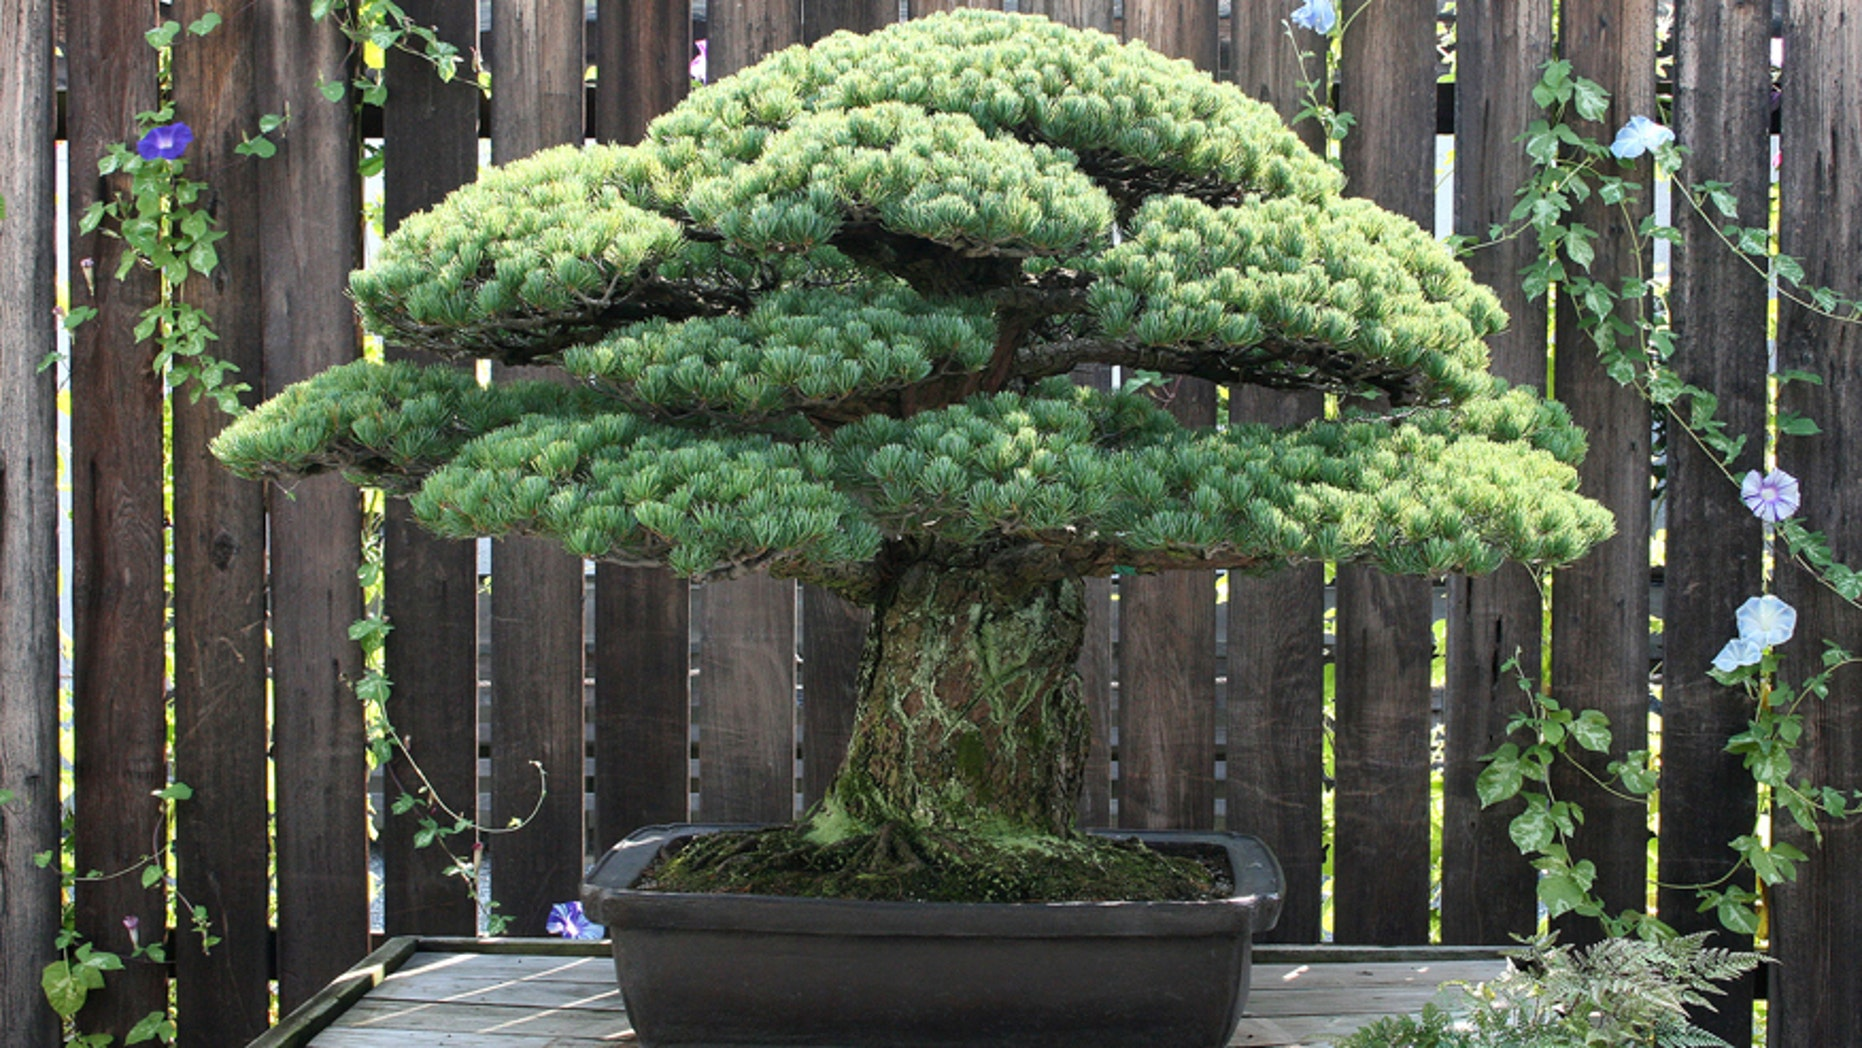 The 390-year old Japanese White Pine.